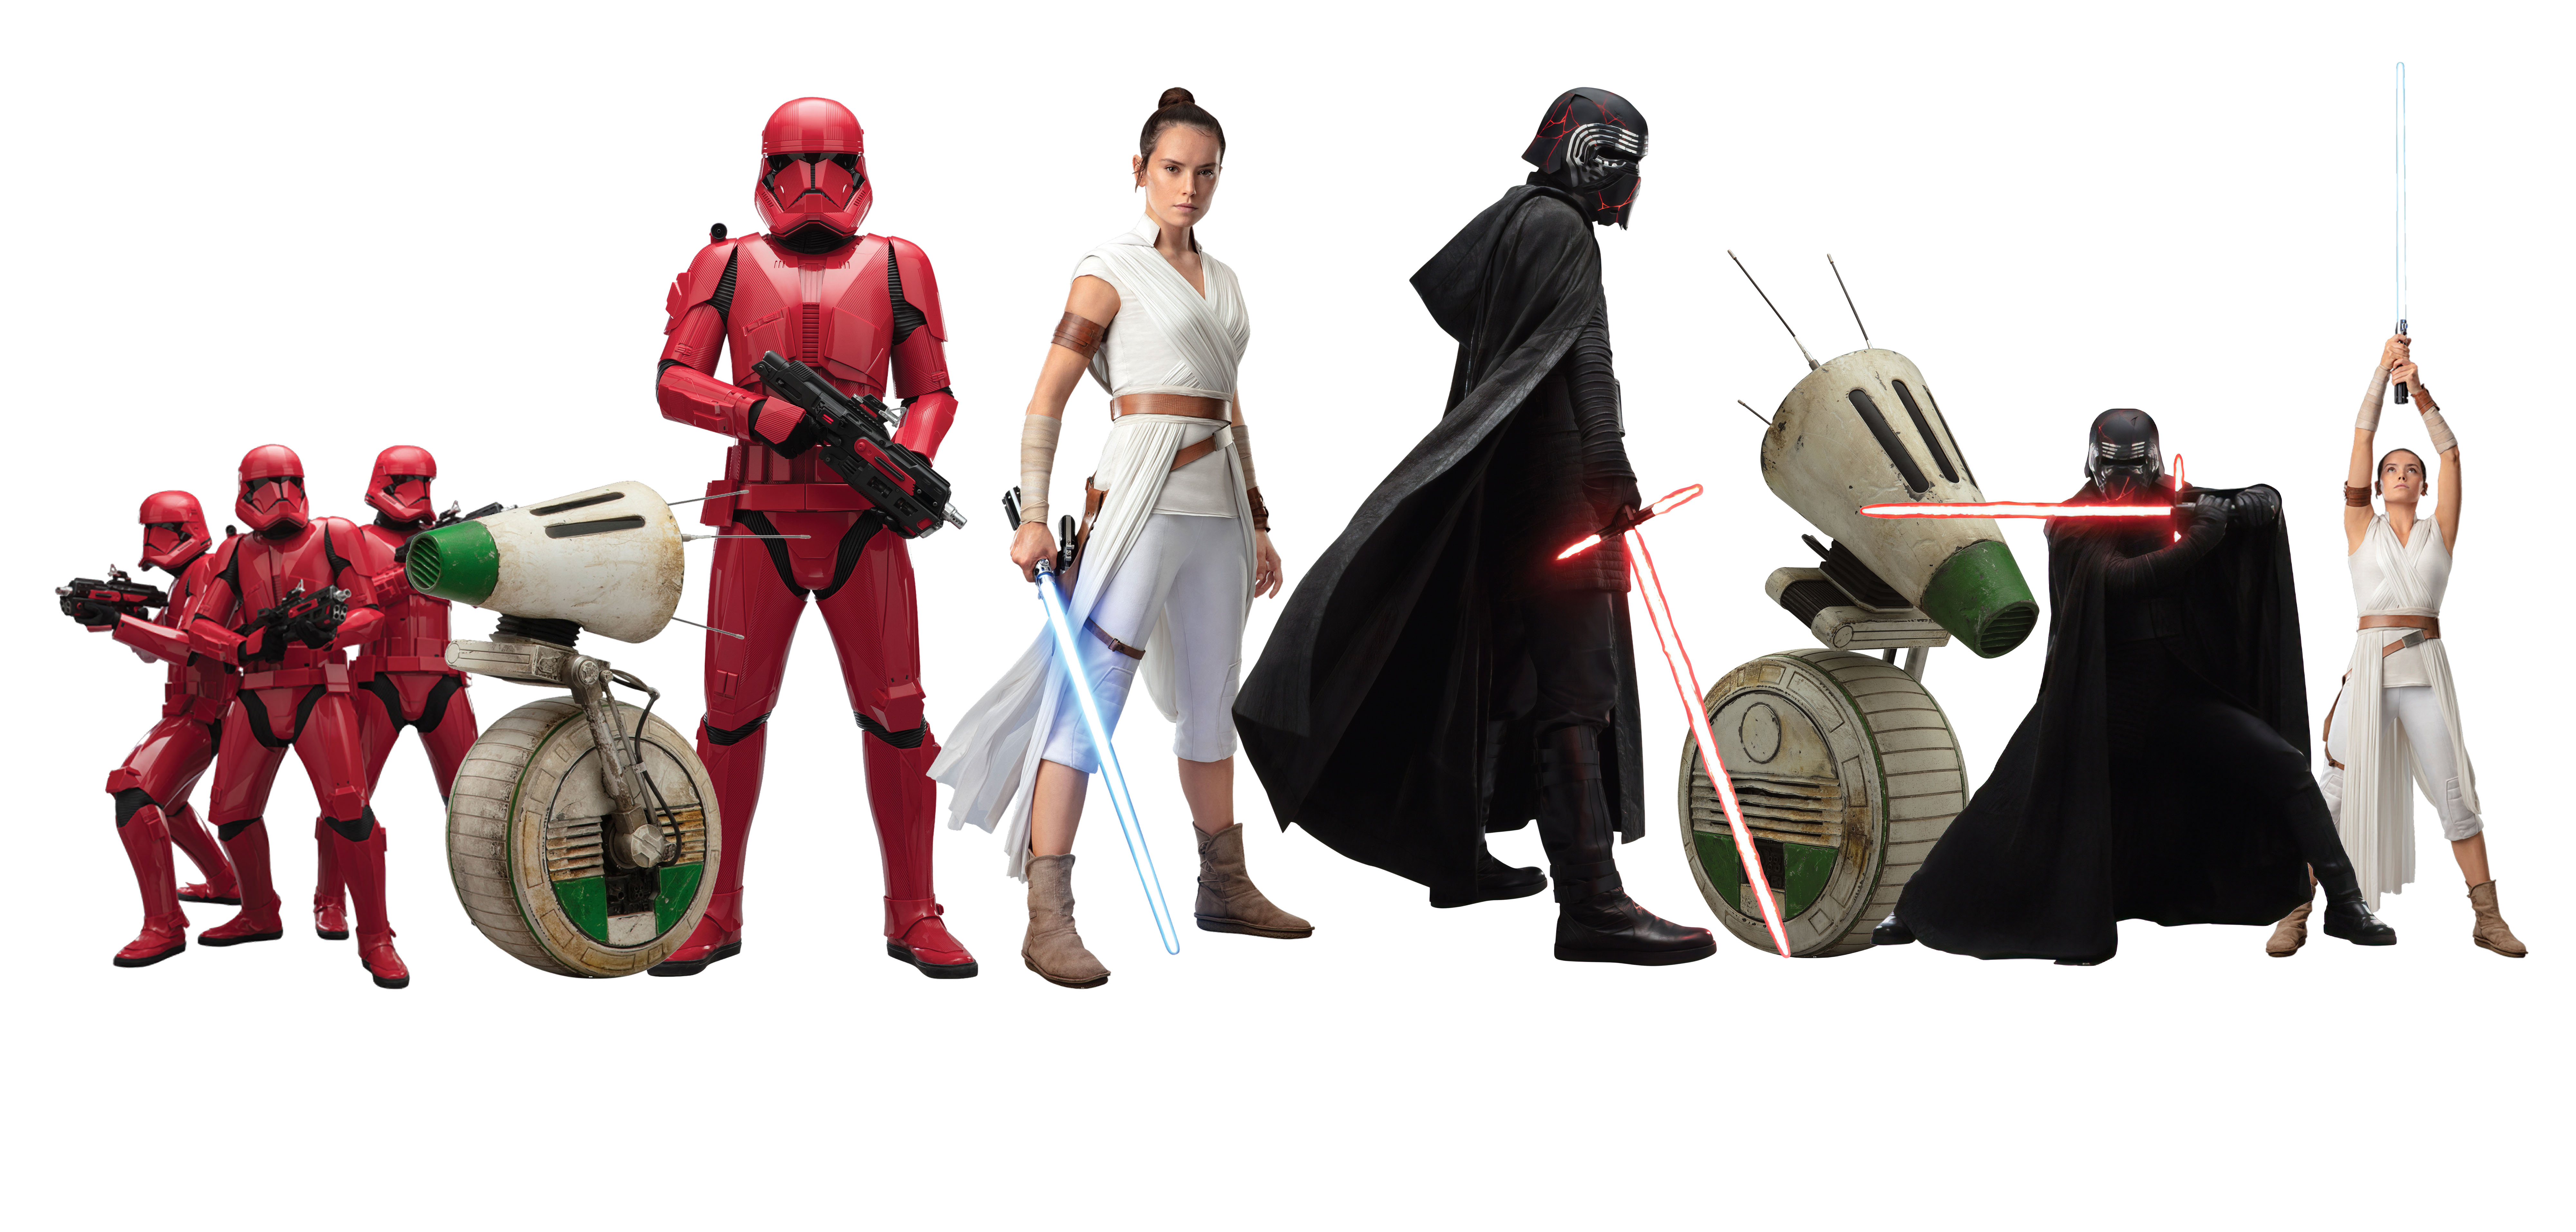 Star Wars The Rise Of Skywalker Official Character Cut Outs By Fathead Geek Carl